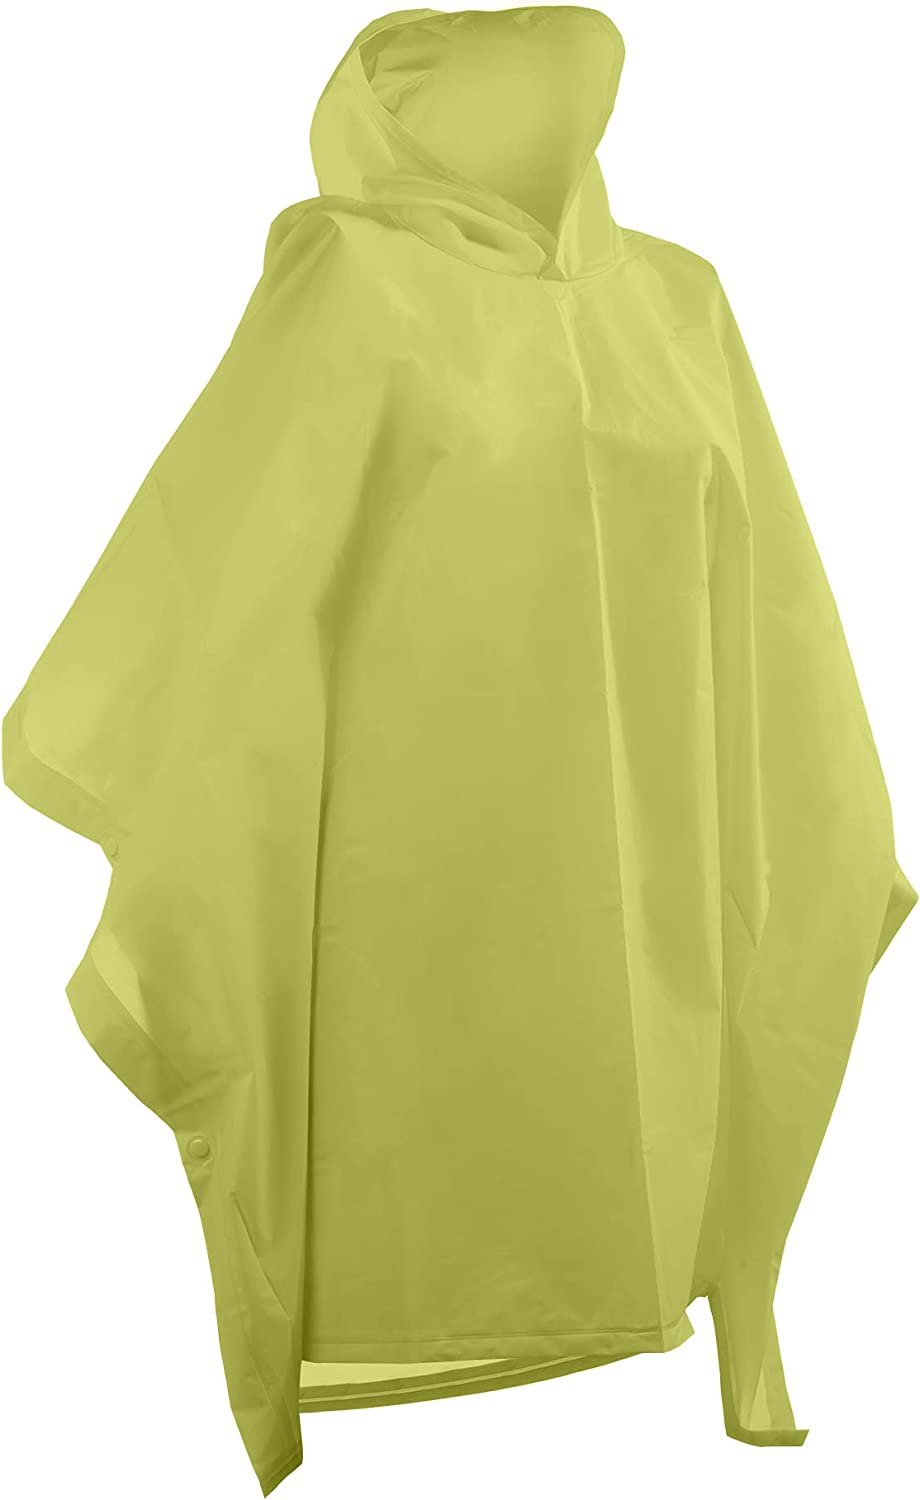 totes Unisex Kids Rain Poncho, lightweight, reusable, and packable on the go rain protection